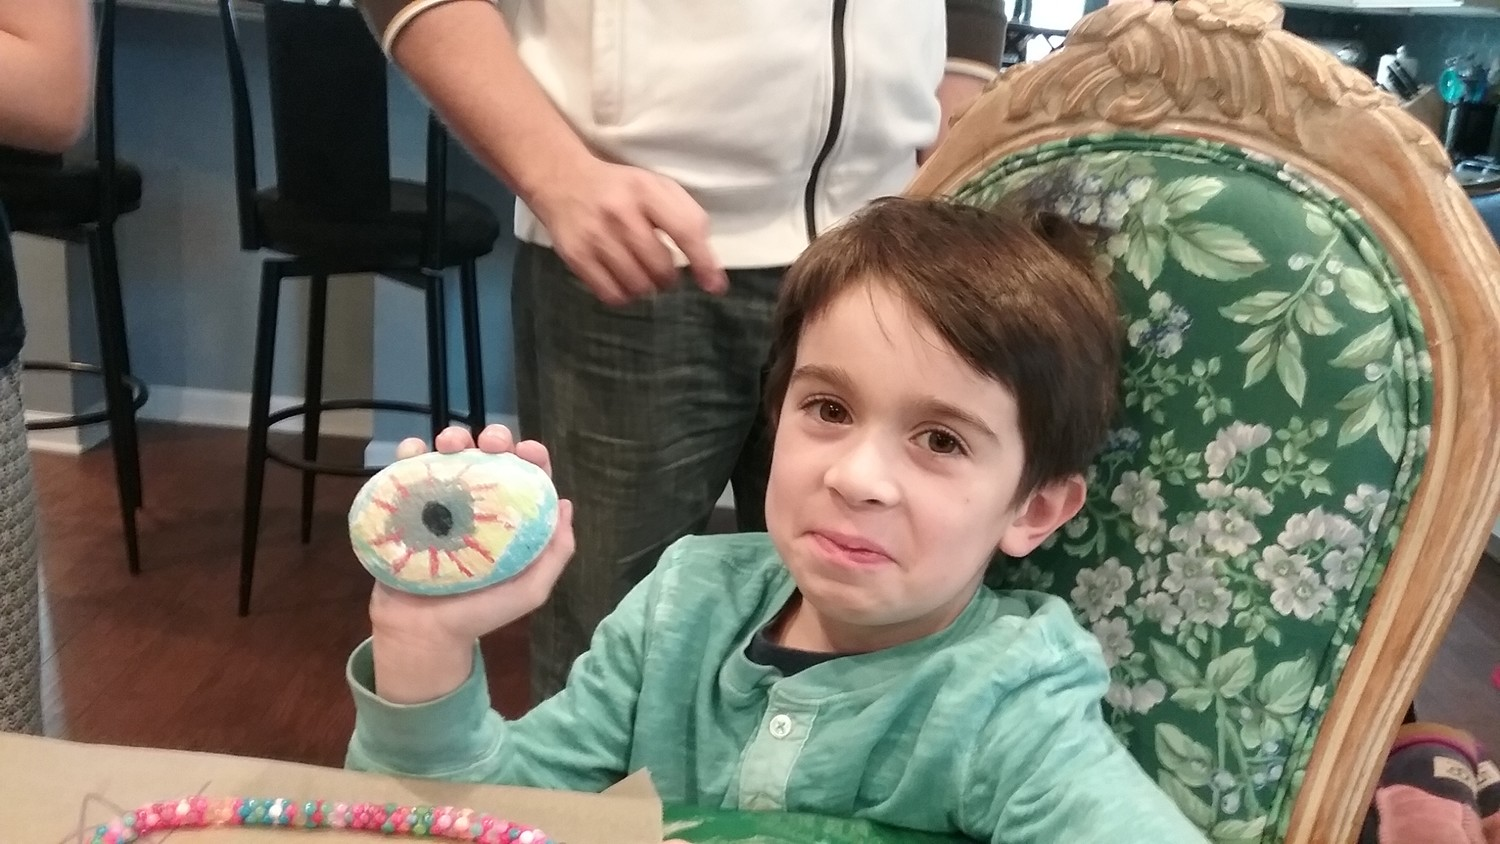 Sebastian Adelman, 6, proudly displays his creation, a colorful interplay between an eye, which takes in light, and the Sun, which emits it.